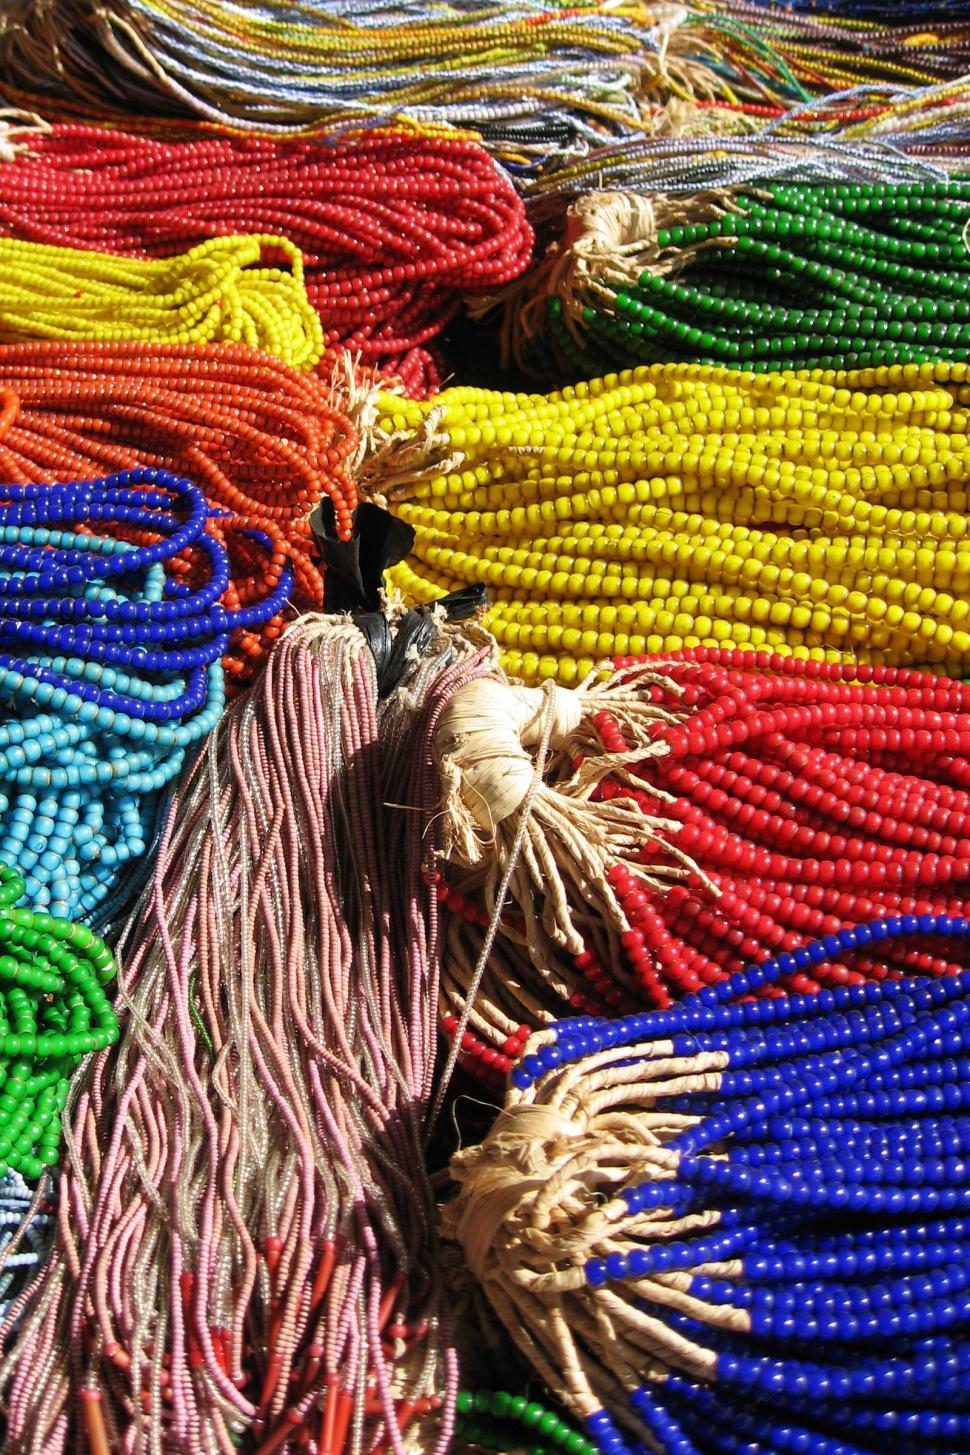 Download Free Stock HD Photo of beads for sale Online